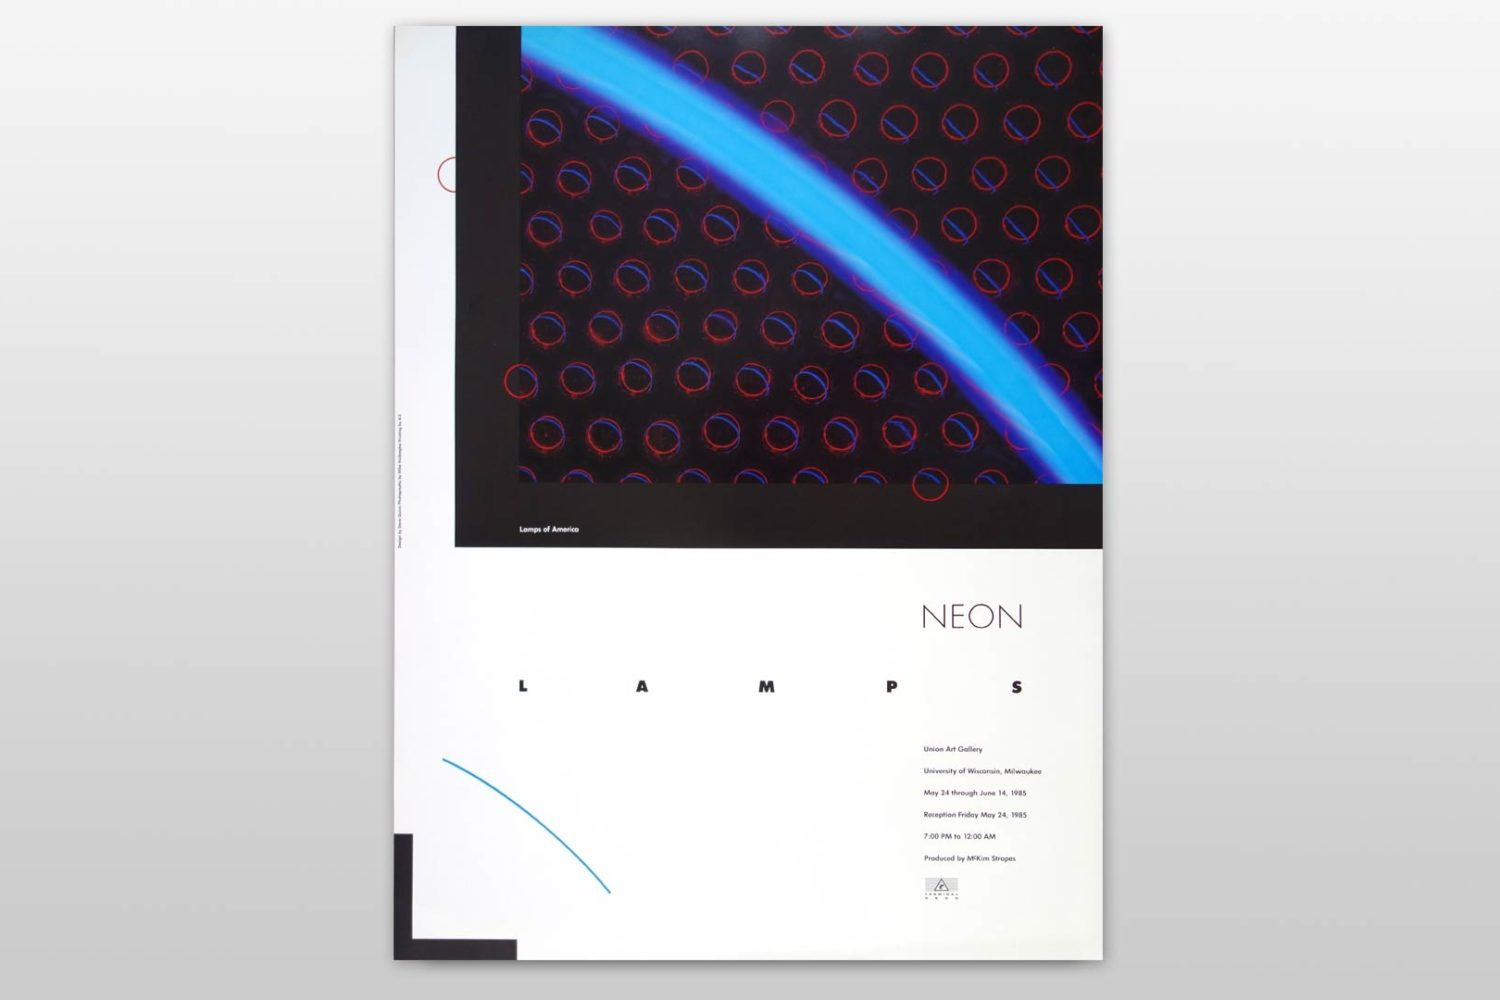 neon-lamps-poster